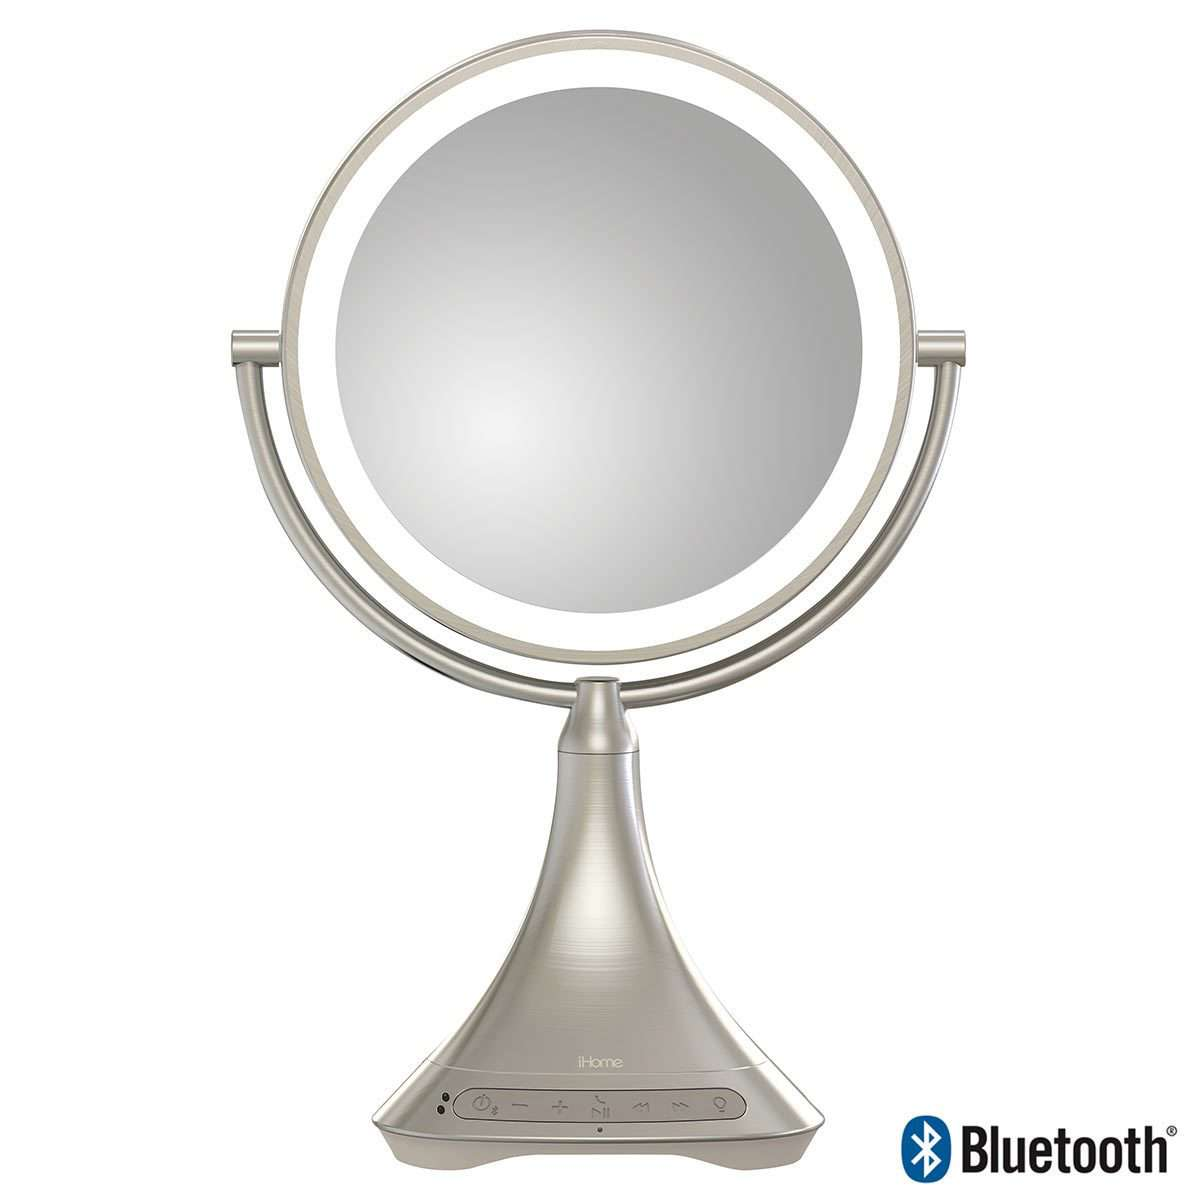 iHome  Double Sided  Vanity Mirror with Bluetooth SpeakersiHome  Double Sided  Vanity Mirror with Bluetooth Speakers